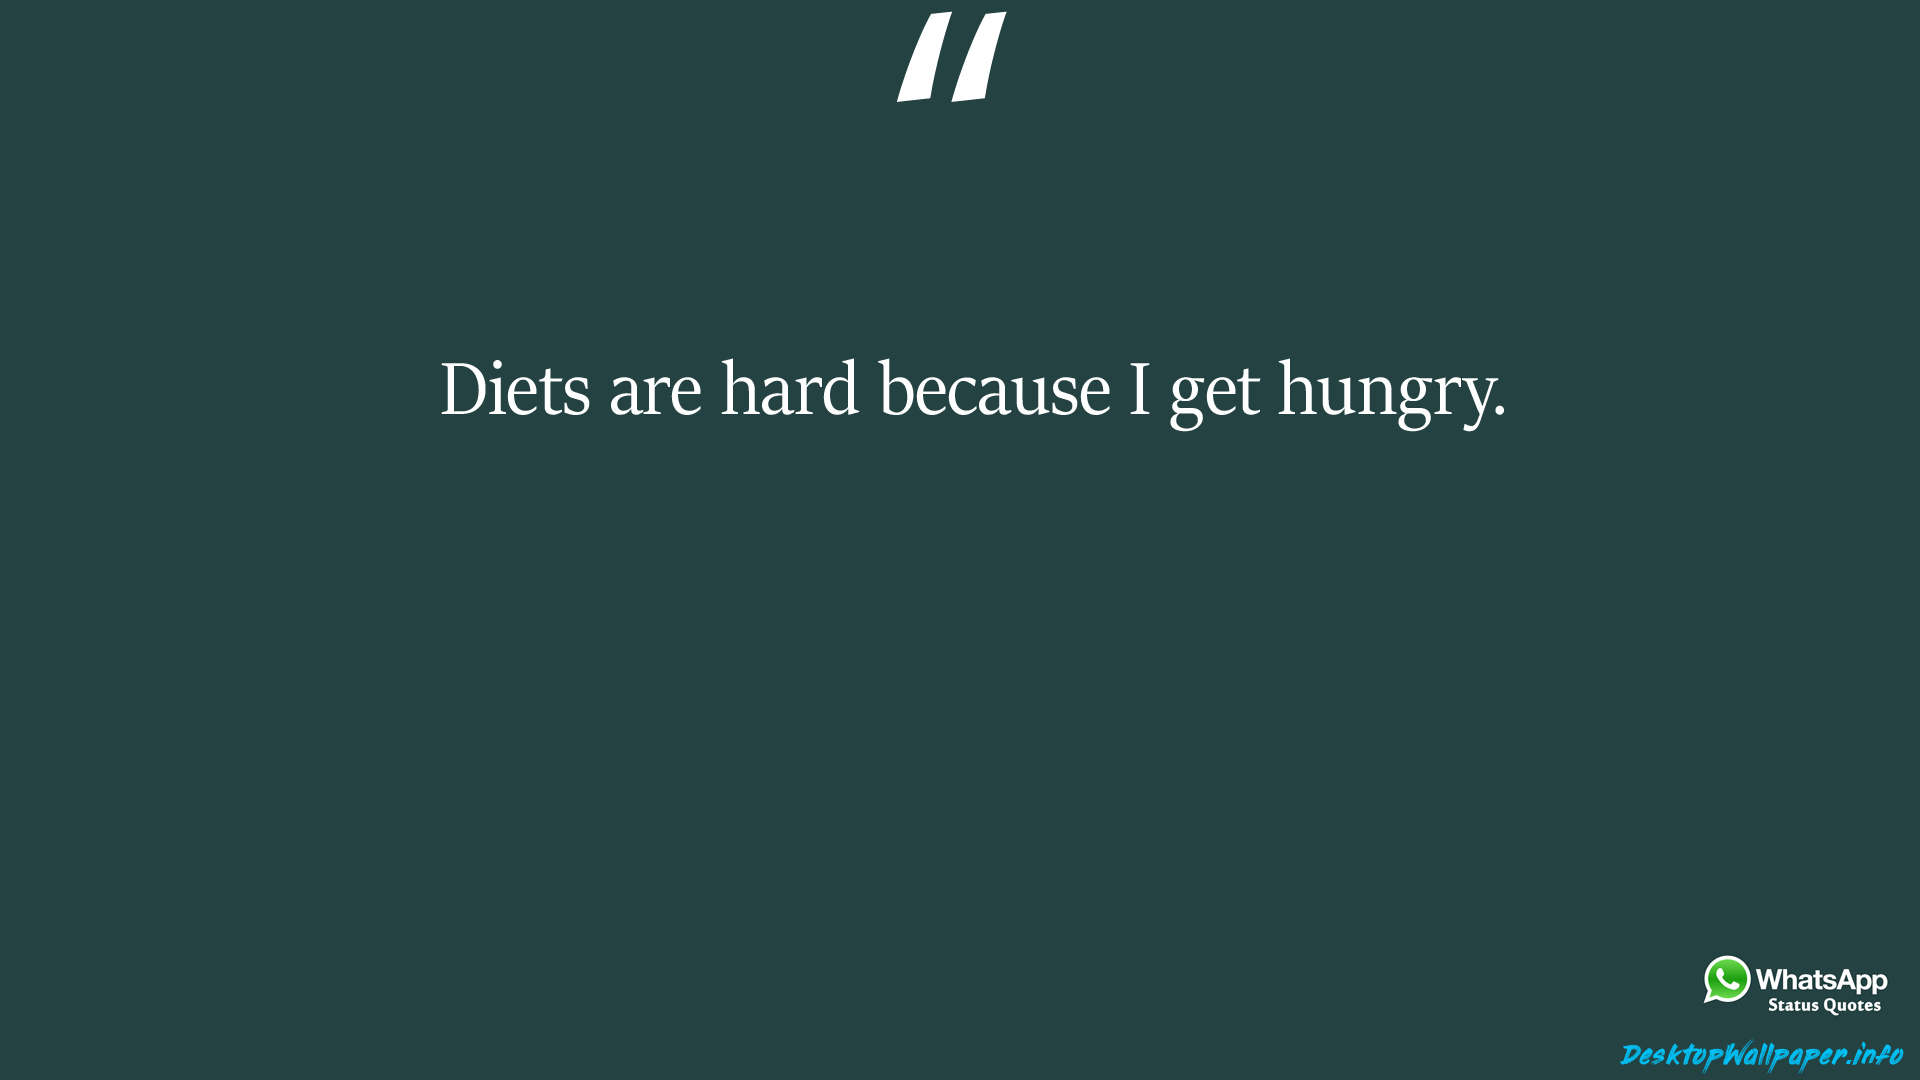 Diets are hard because I get hungry